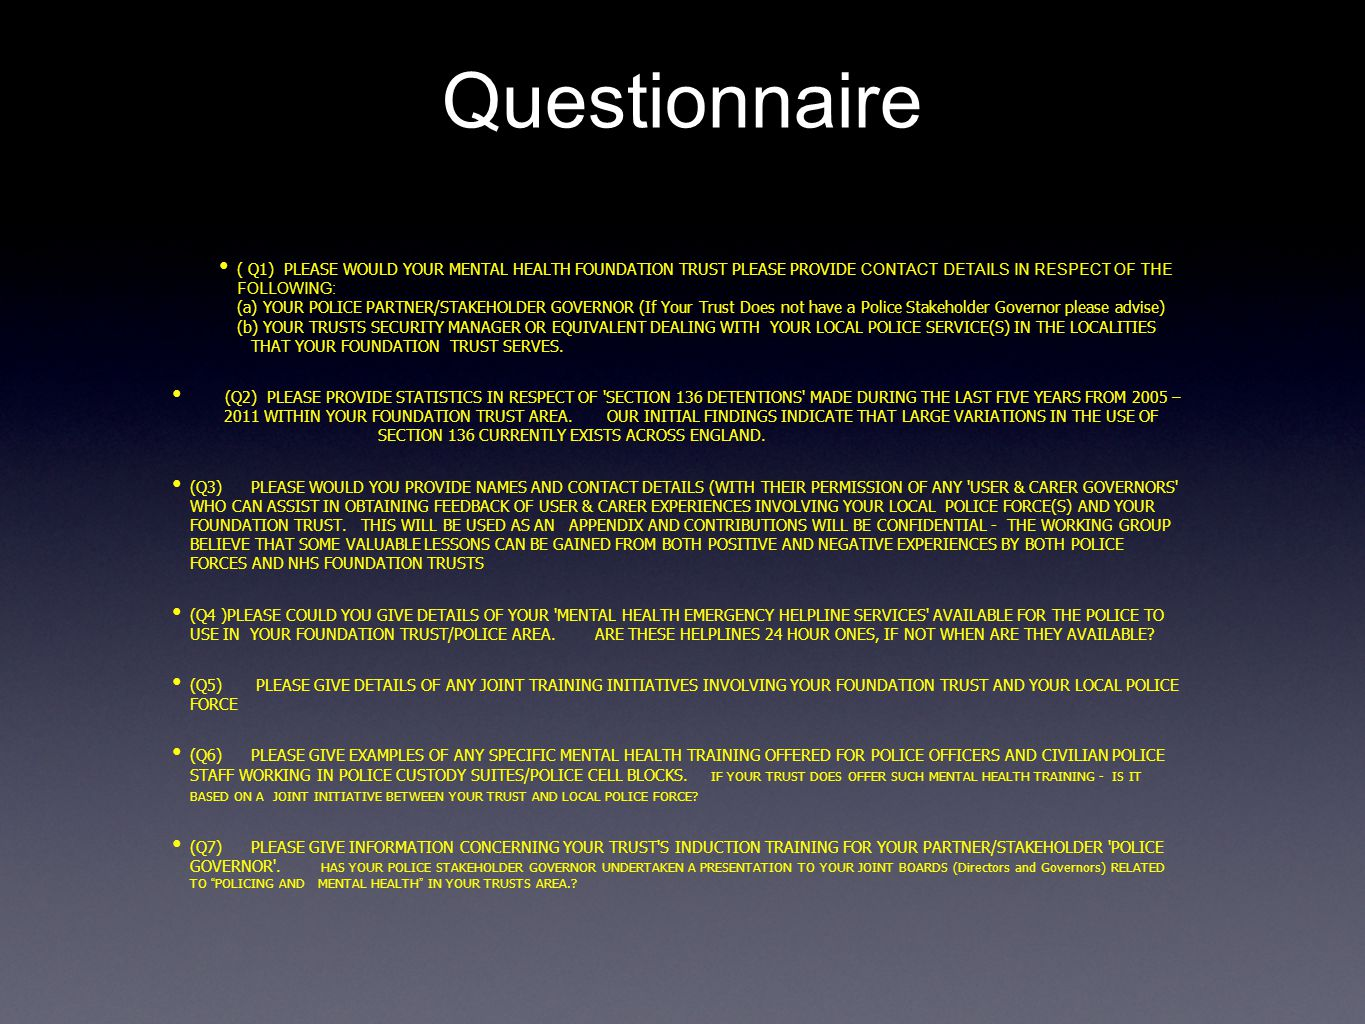 Questionnaire ( Q1) PLEASE WOULD YOUR MENTAL HEALTH FOUNDATION TRUST PLEASE PROVIDE CONTACT DETAILS IN RESPECT OF THE FOLLOWING: (a) YOUR POLICE PARTNER/STAKEHOLDER GOVERNOR (If Your Trust Does not have a Police Stakeholder Governor please advise) (b) YOUR TRUSTS SECURITY MANAGER OR EQUIVALENT DEALING WITH YOUR LOCAL POLICE SERVICE(S) IN THE LOCALITIES THAT YOUR FOUNDATION TRUST SERVES.